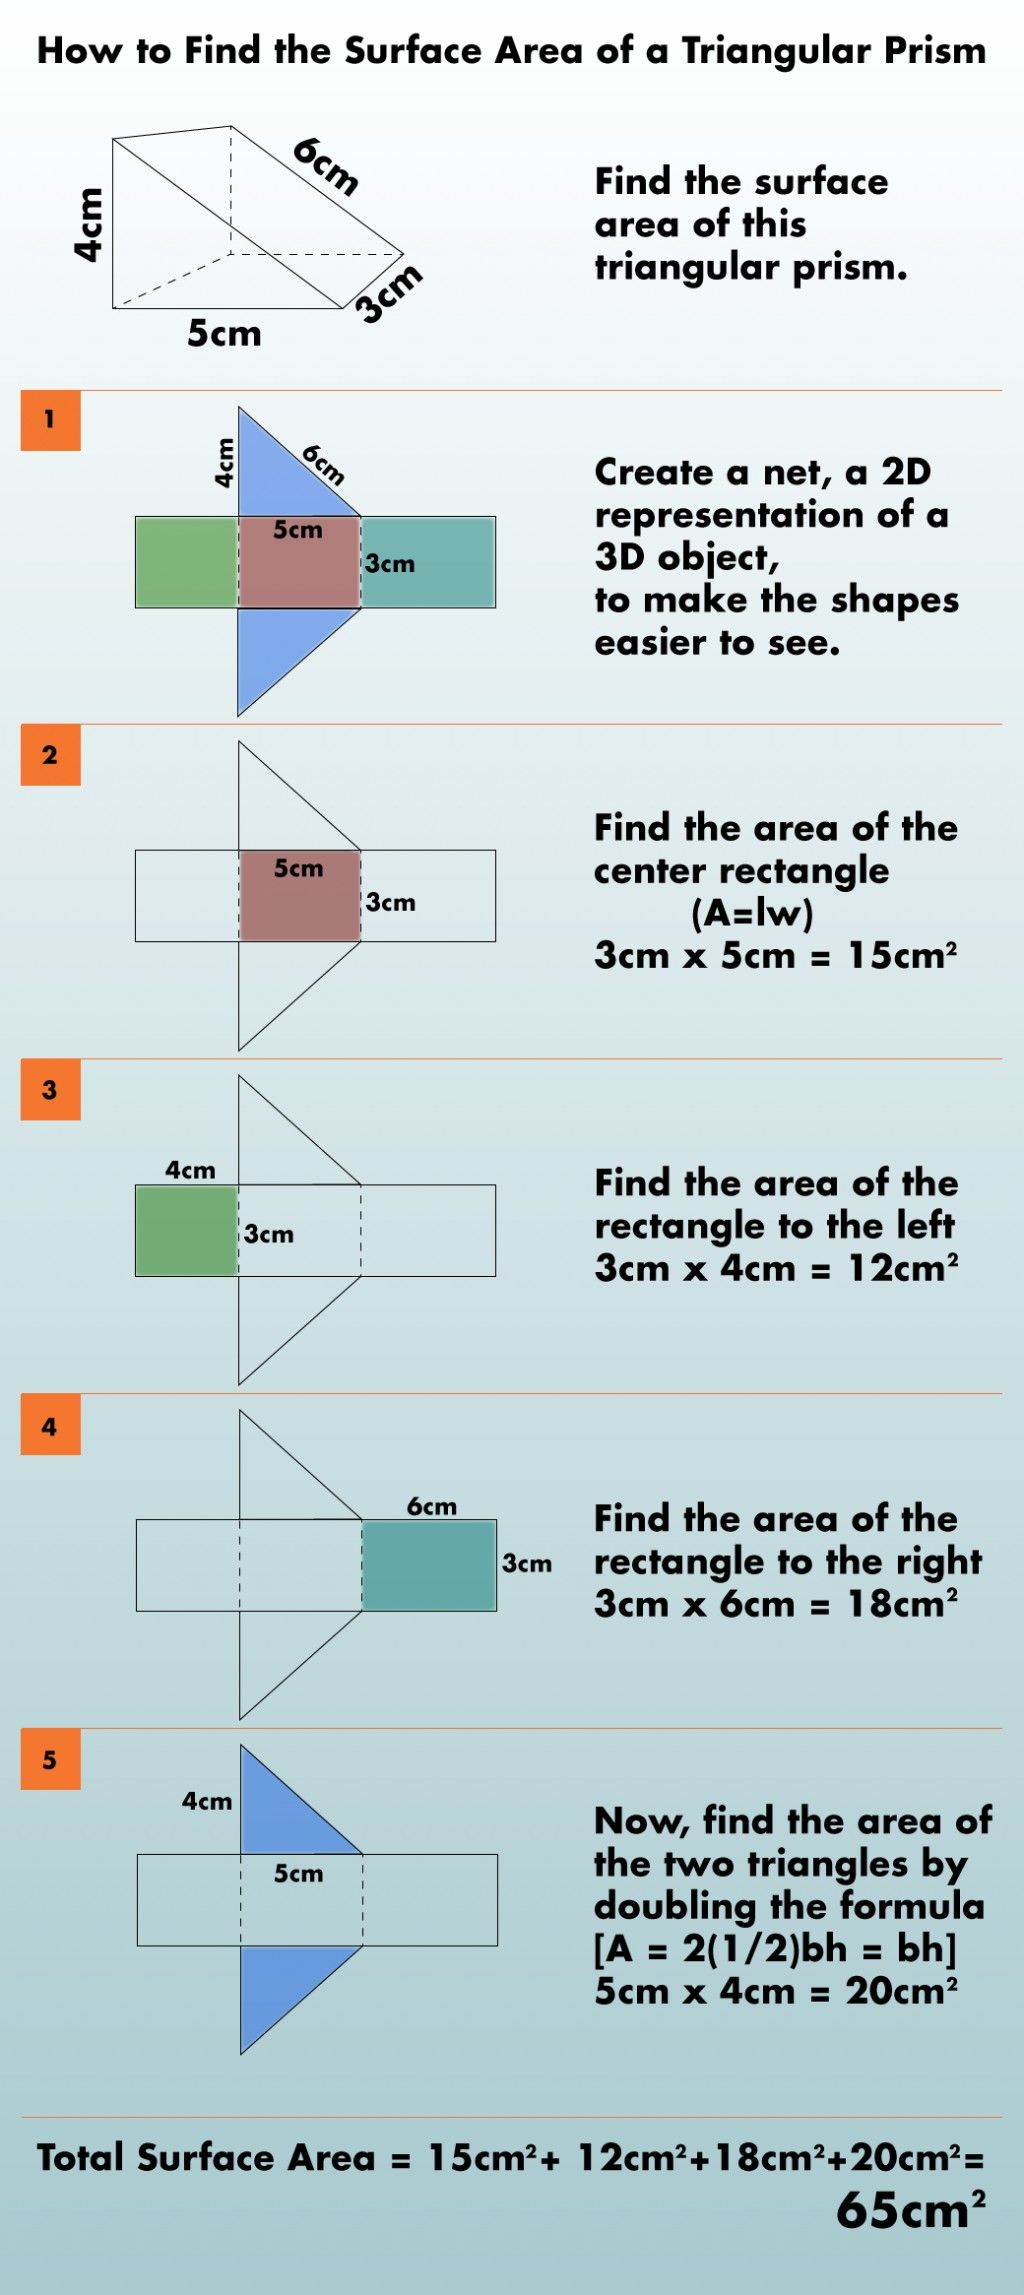 How To Find The Surface Area Of Right Angled And Isosceles Triangular Prisms Triangular Prism Surface Area Surface